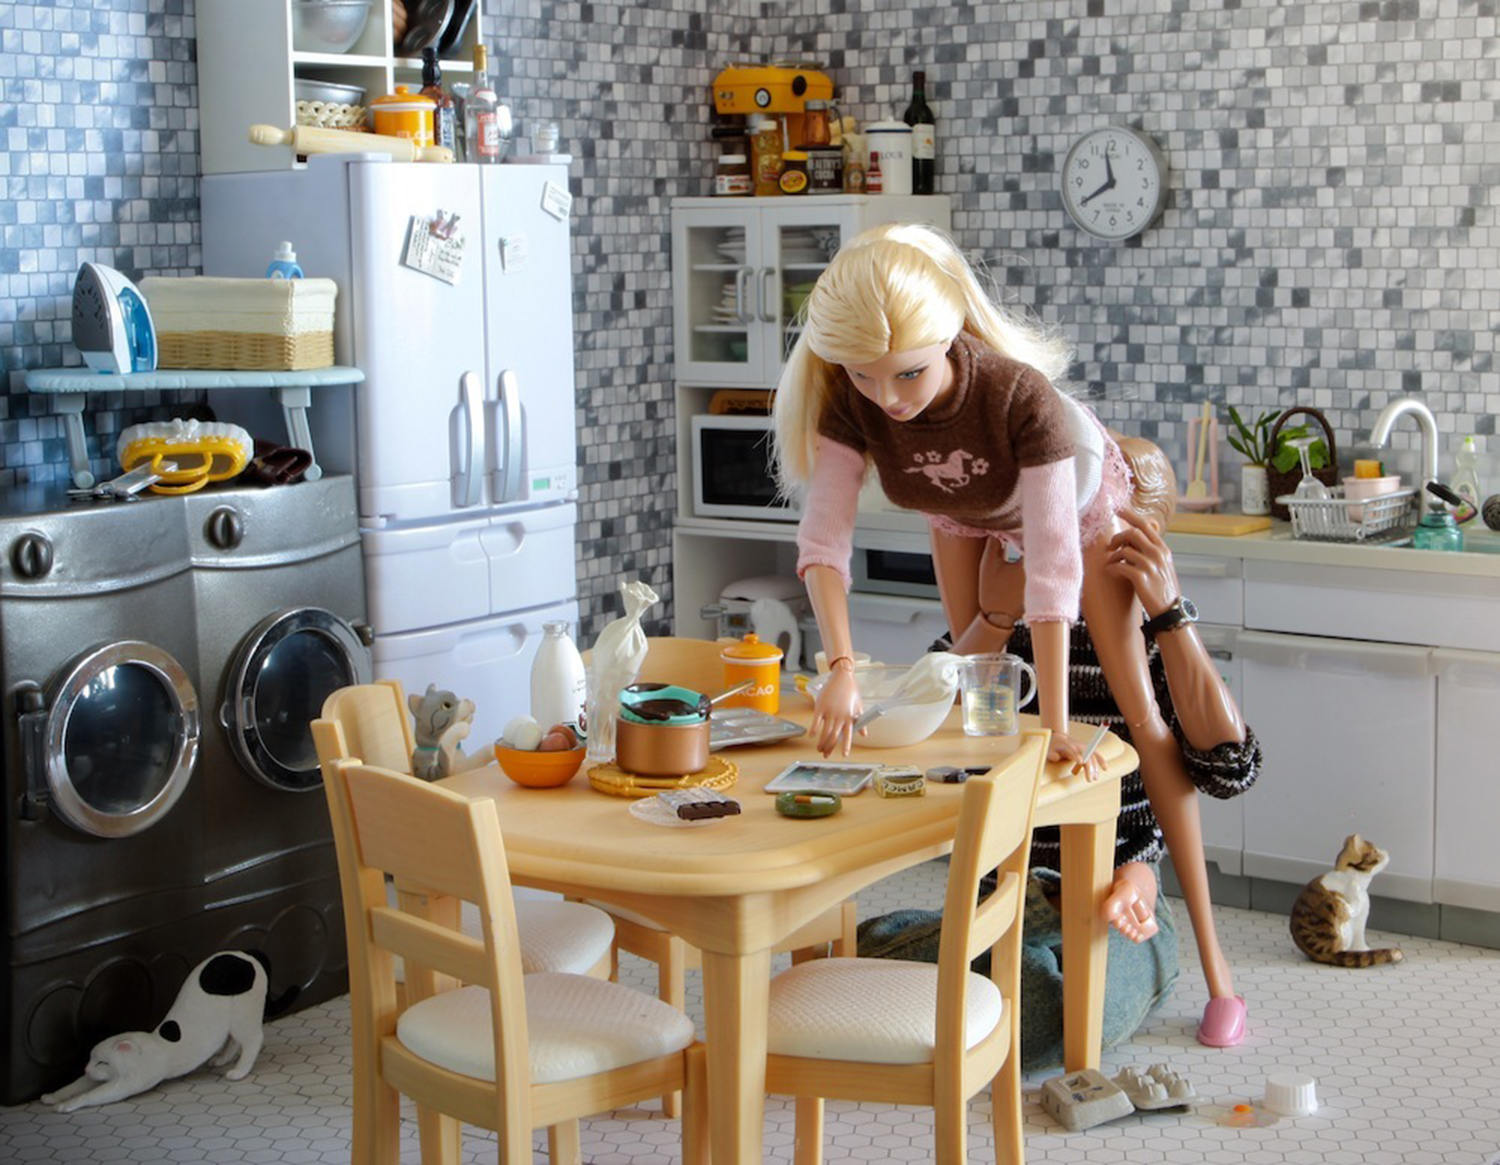 Mariel Clayton - erotic dolls in kitchen